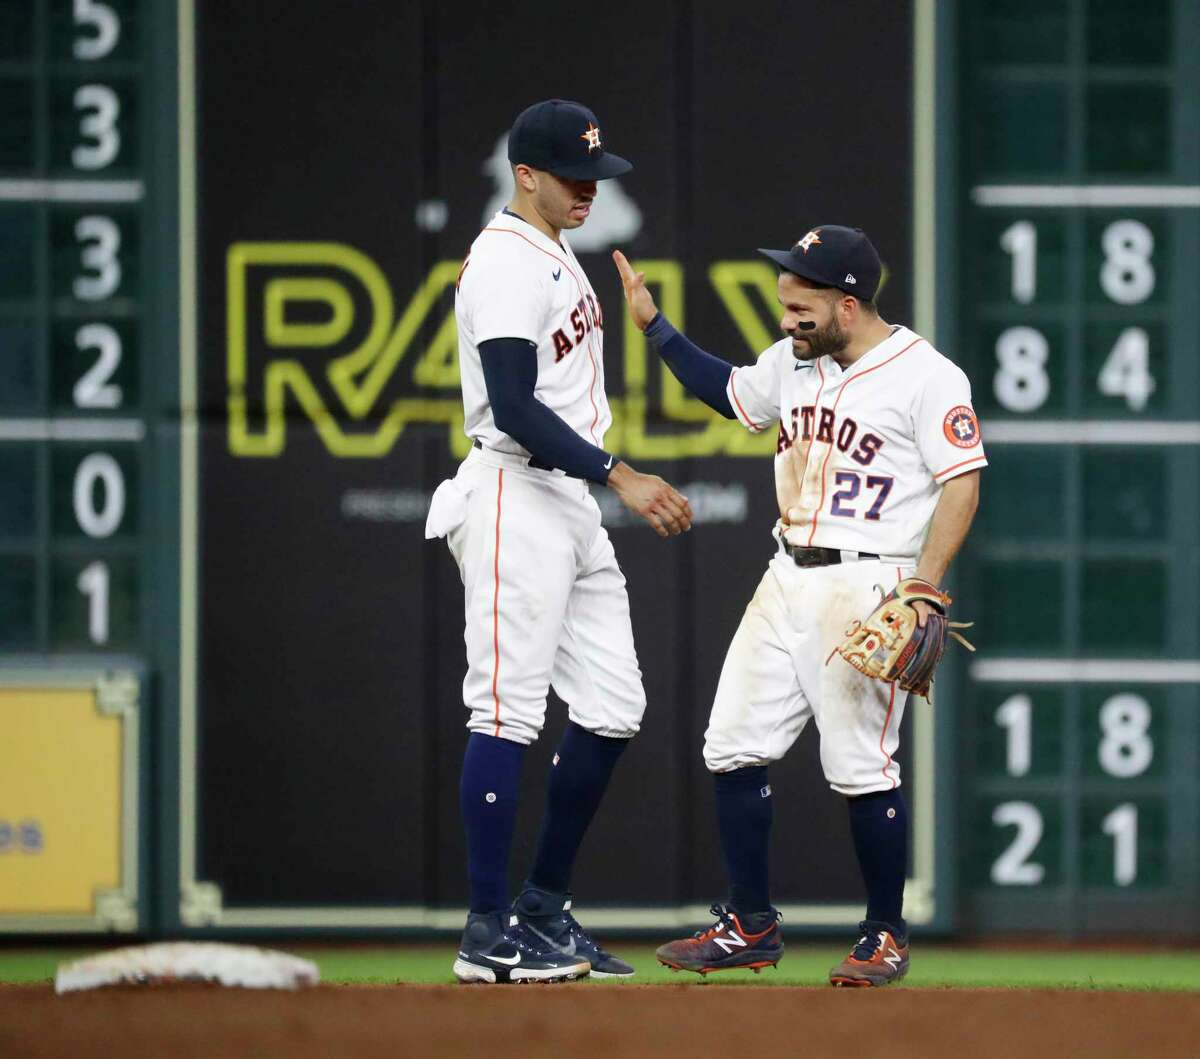 Houston Astros shortstop Carlos Correa (1) and second baseman Jose Altuve (27) celebrate the Astros 5-1 win over the Los Angeles Angels dafter an MLB baseball game at Minute Maid Park, Tuesday, May 11, 2021, in Houston.